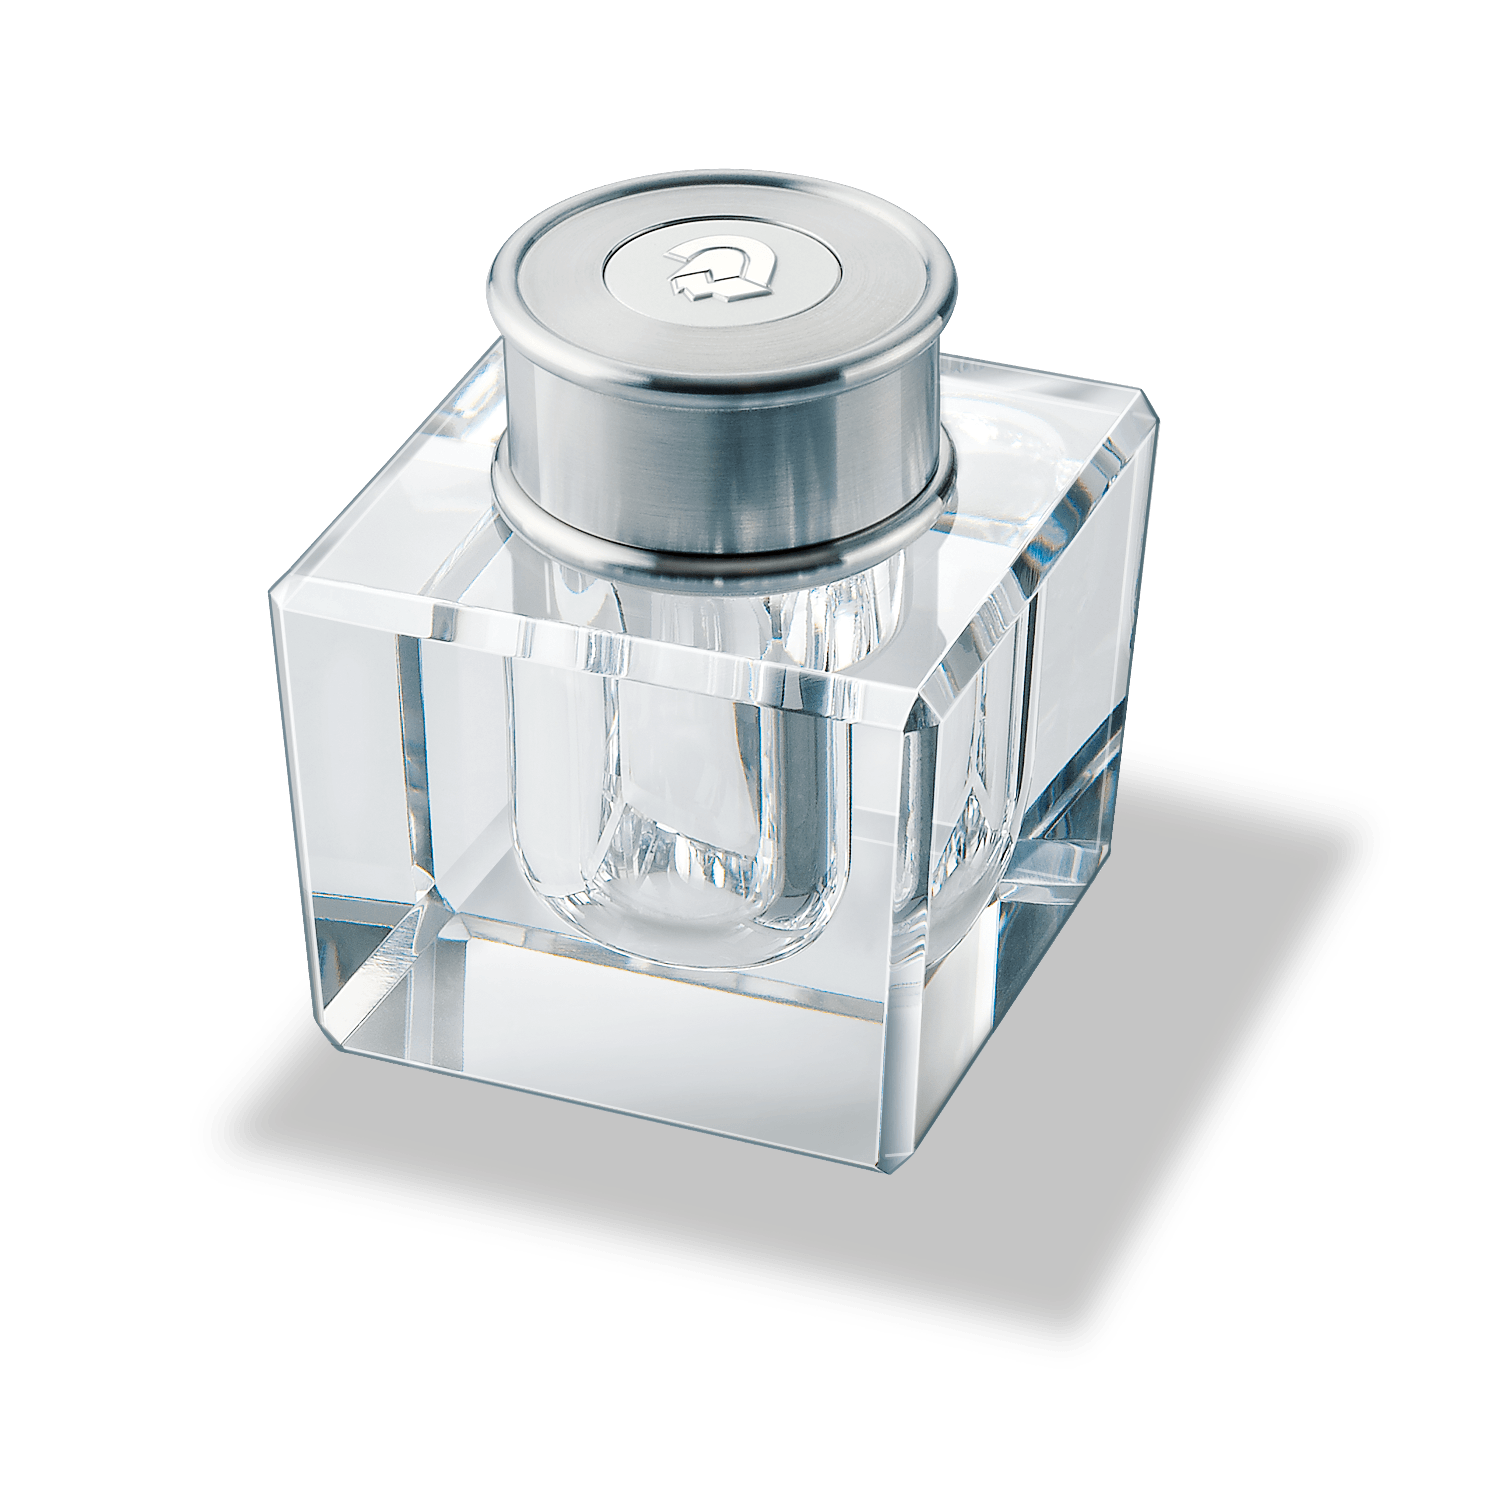 J.S. Staedtler Inkwell - High-quality lead crystal inkwell ...